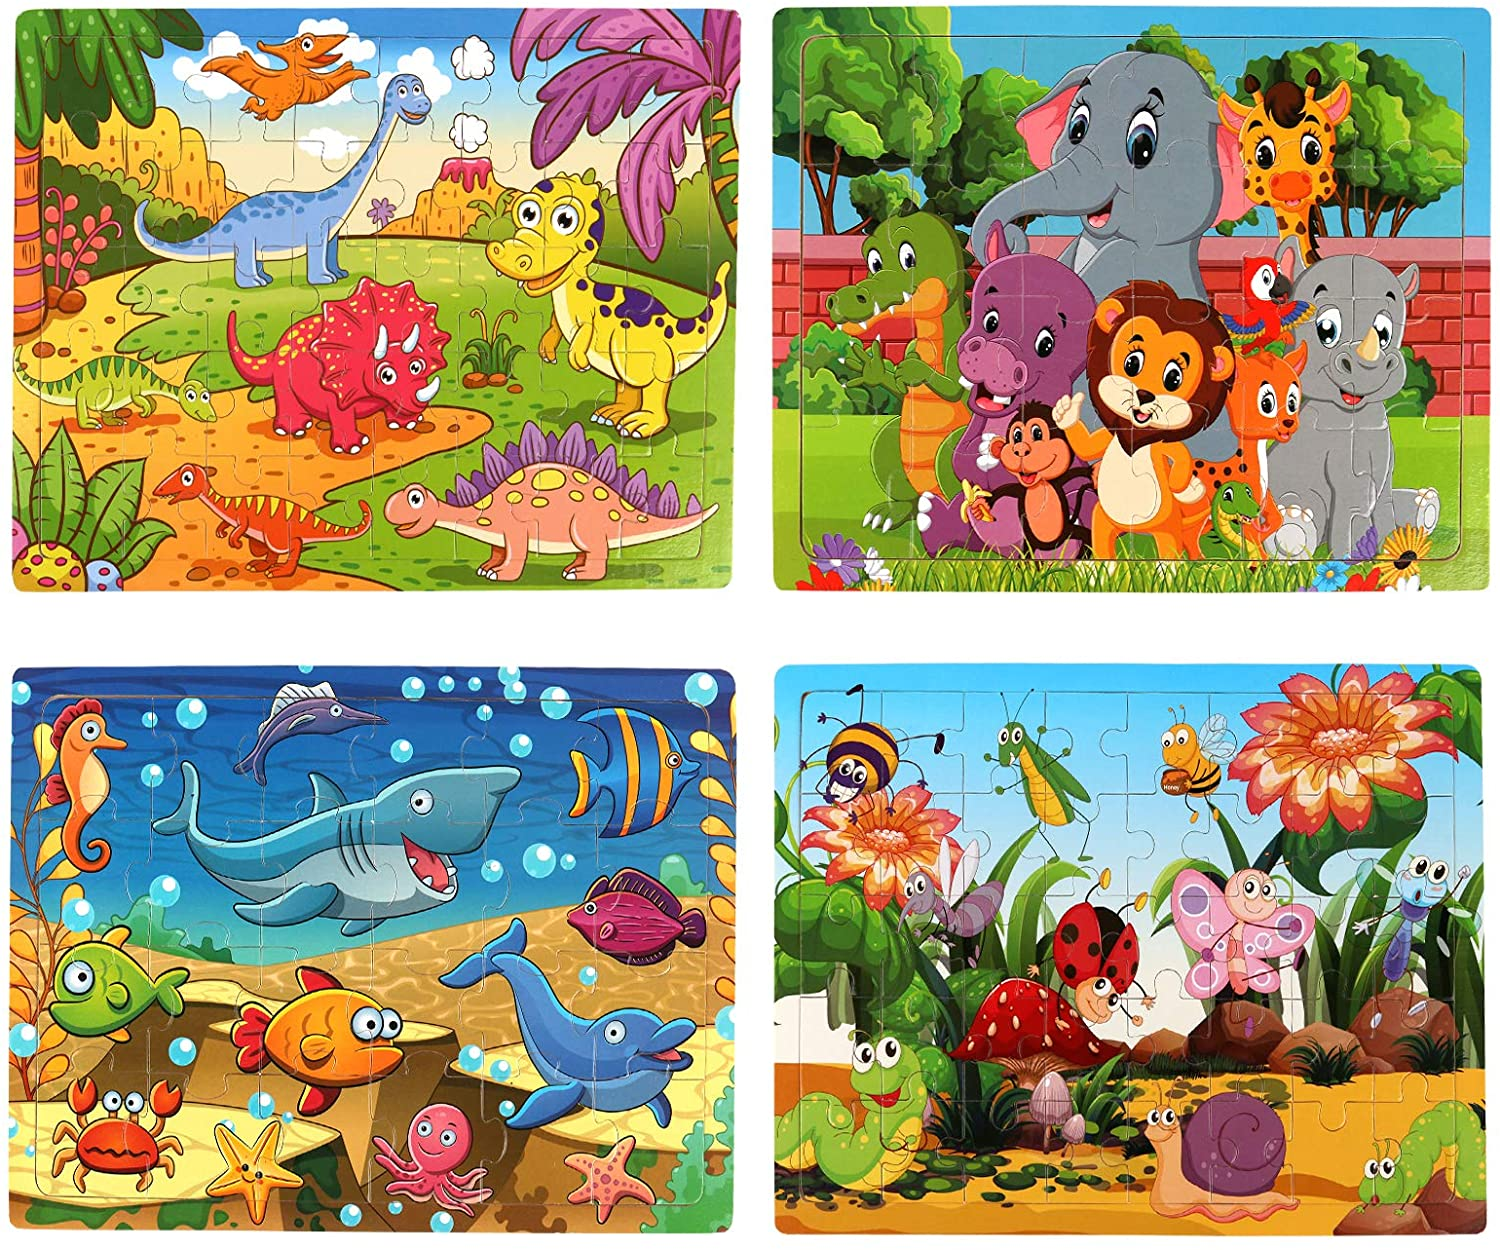 SYNARRY Wooden Jigsaw Puzzles Purchase for Kids Pack Max 53% OFF Old Year Age 4 3-5